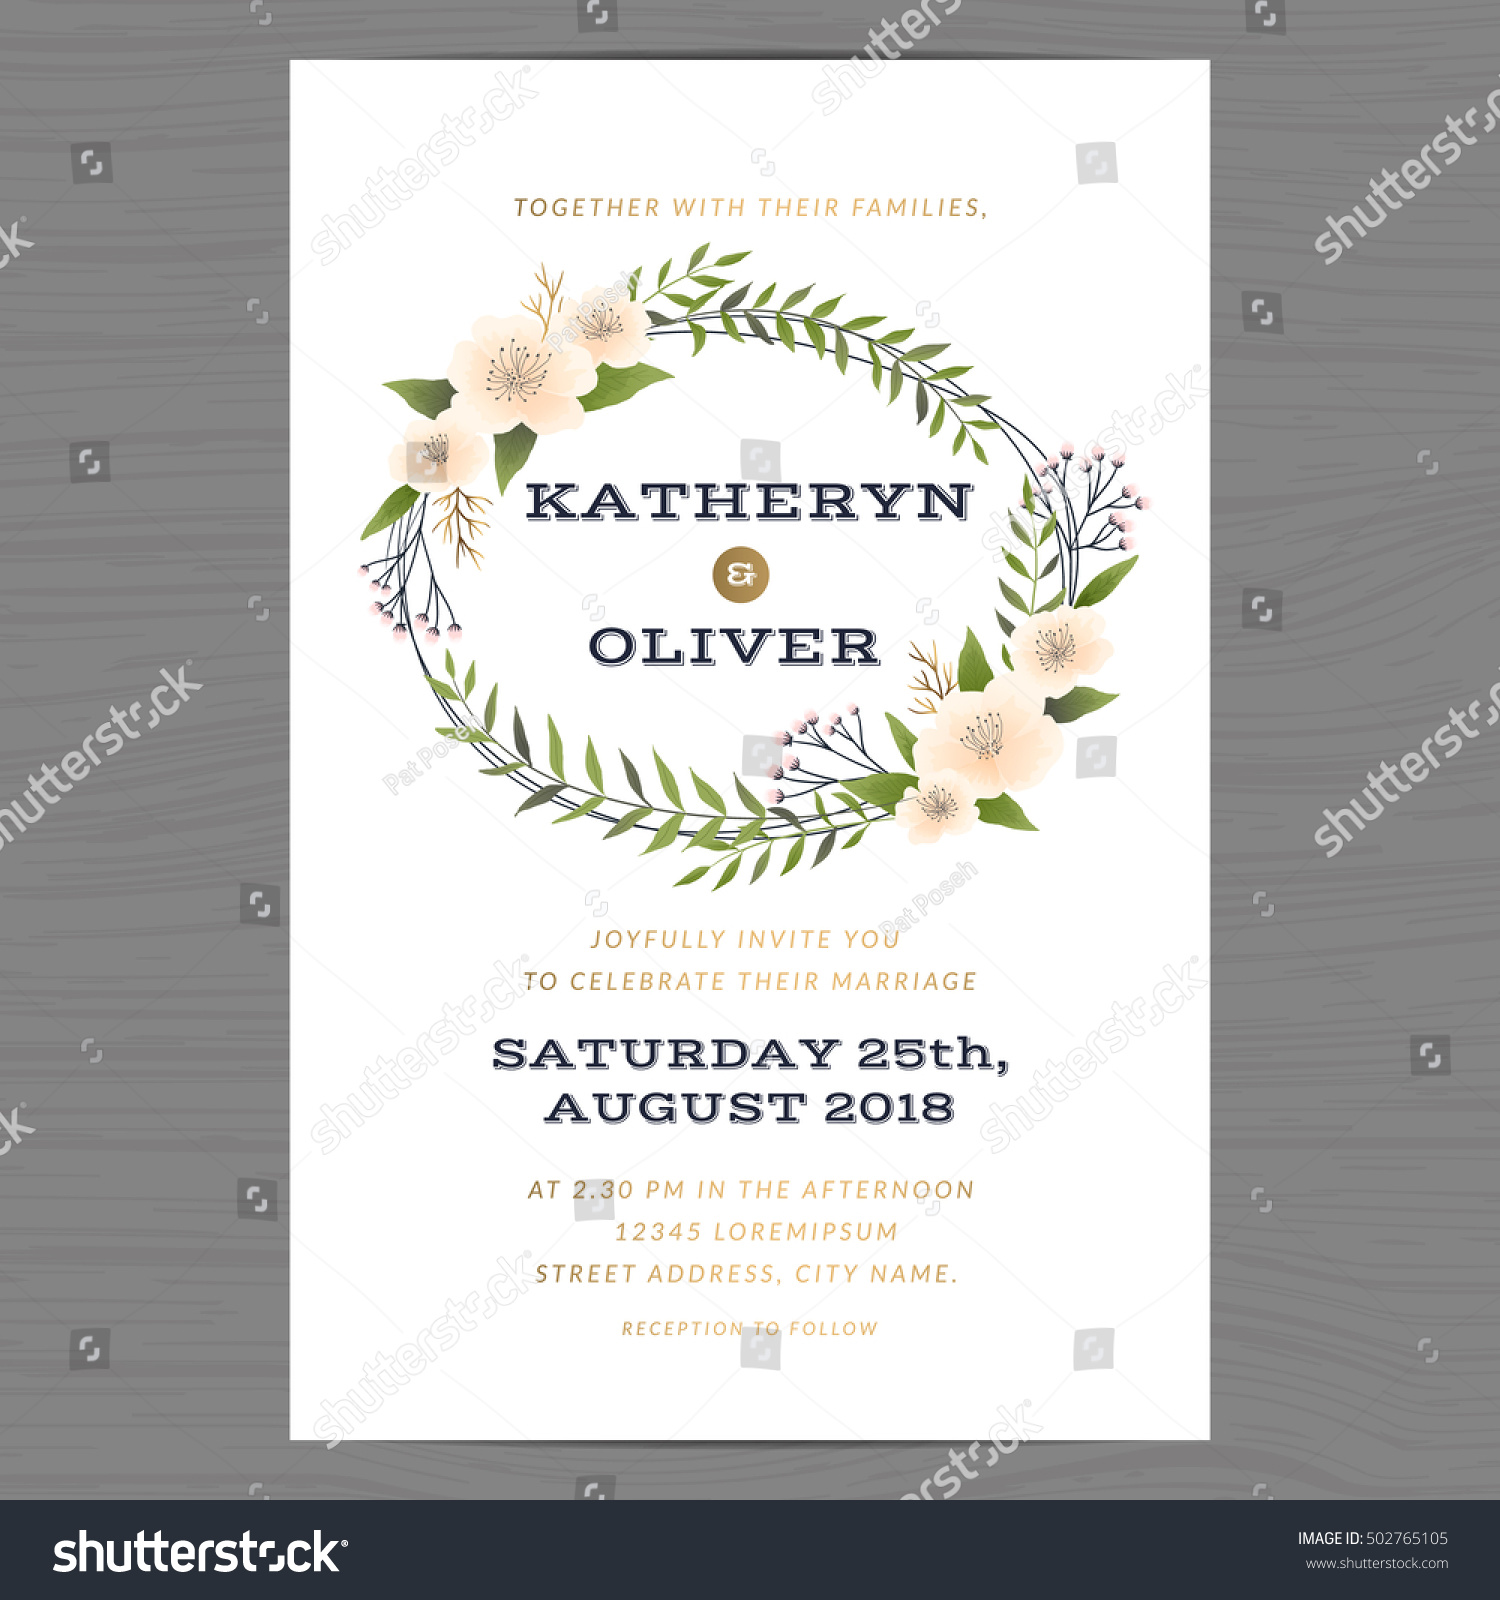 Wedding Invitation Card Template Decorate Flower Stock Vector HD